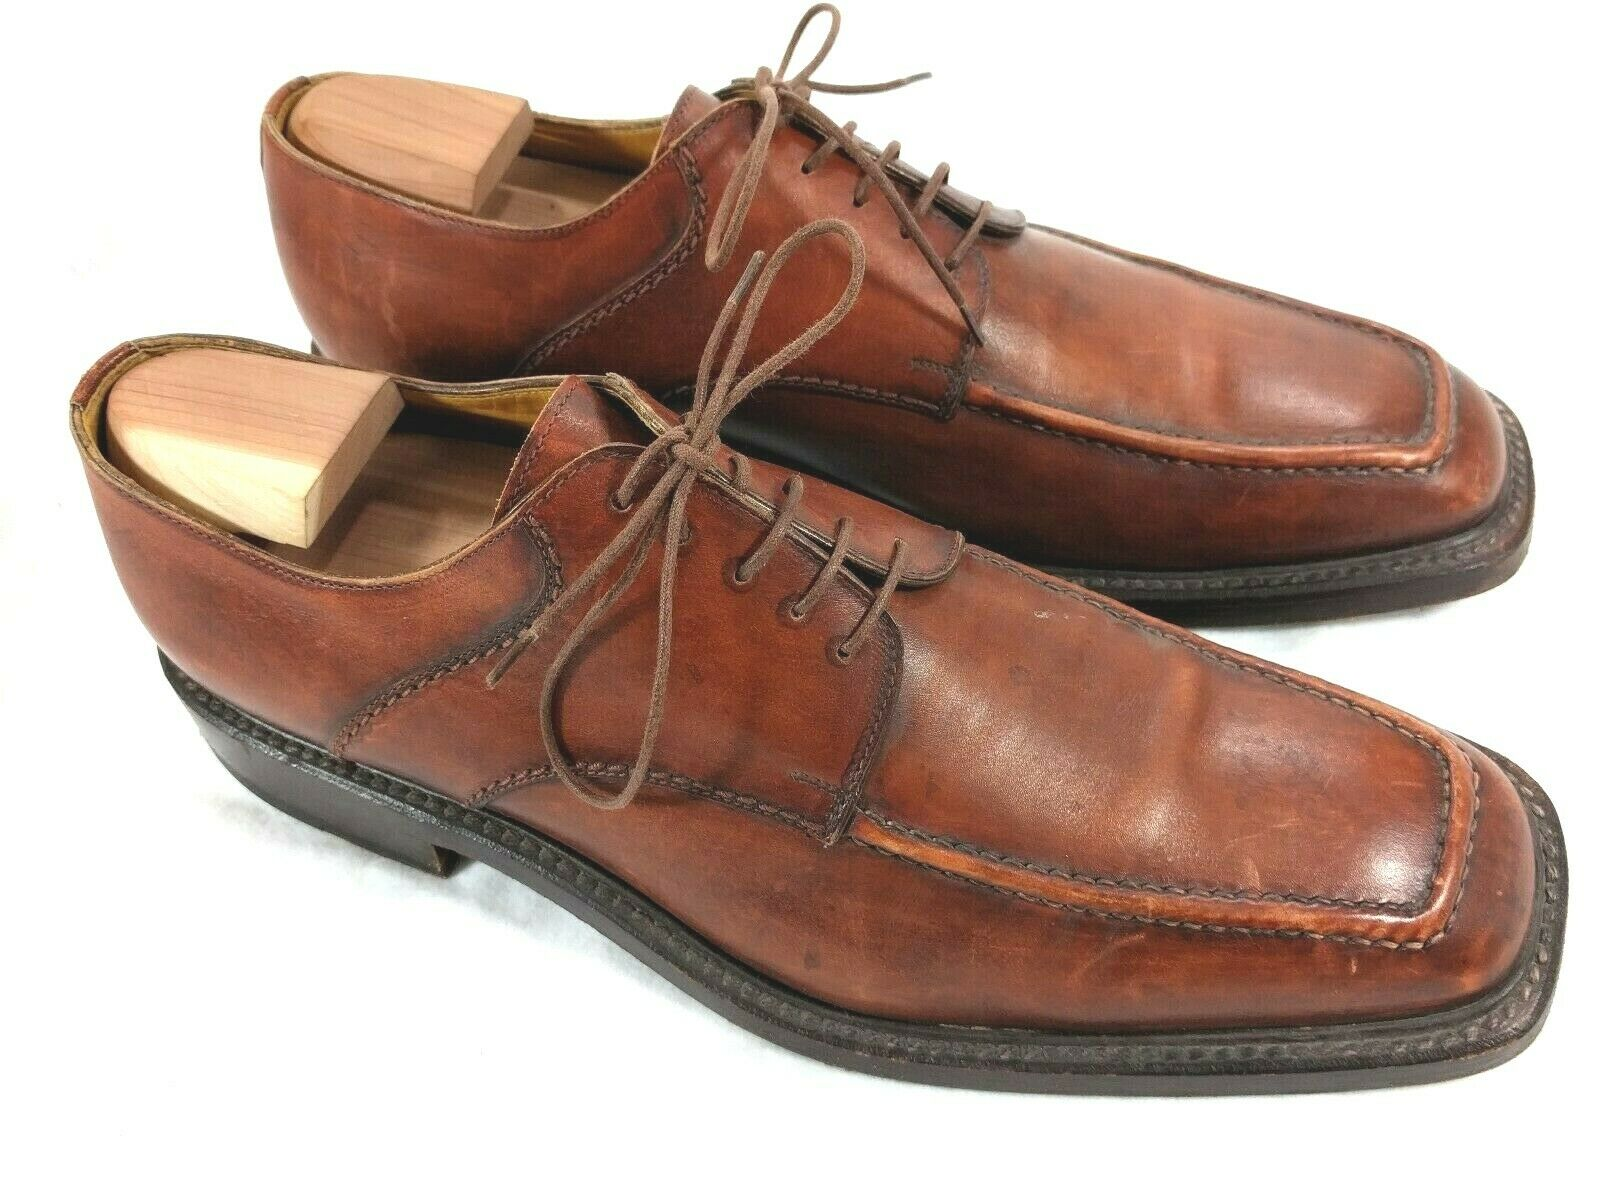 Campanile Men's Size 9 Apron Toe Oxford Light Brown shoes Made in